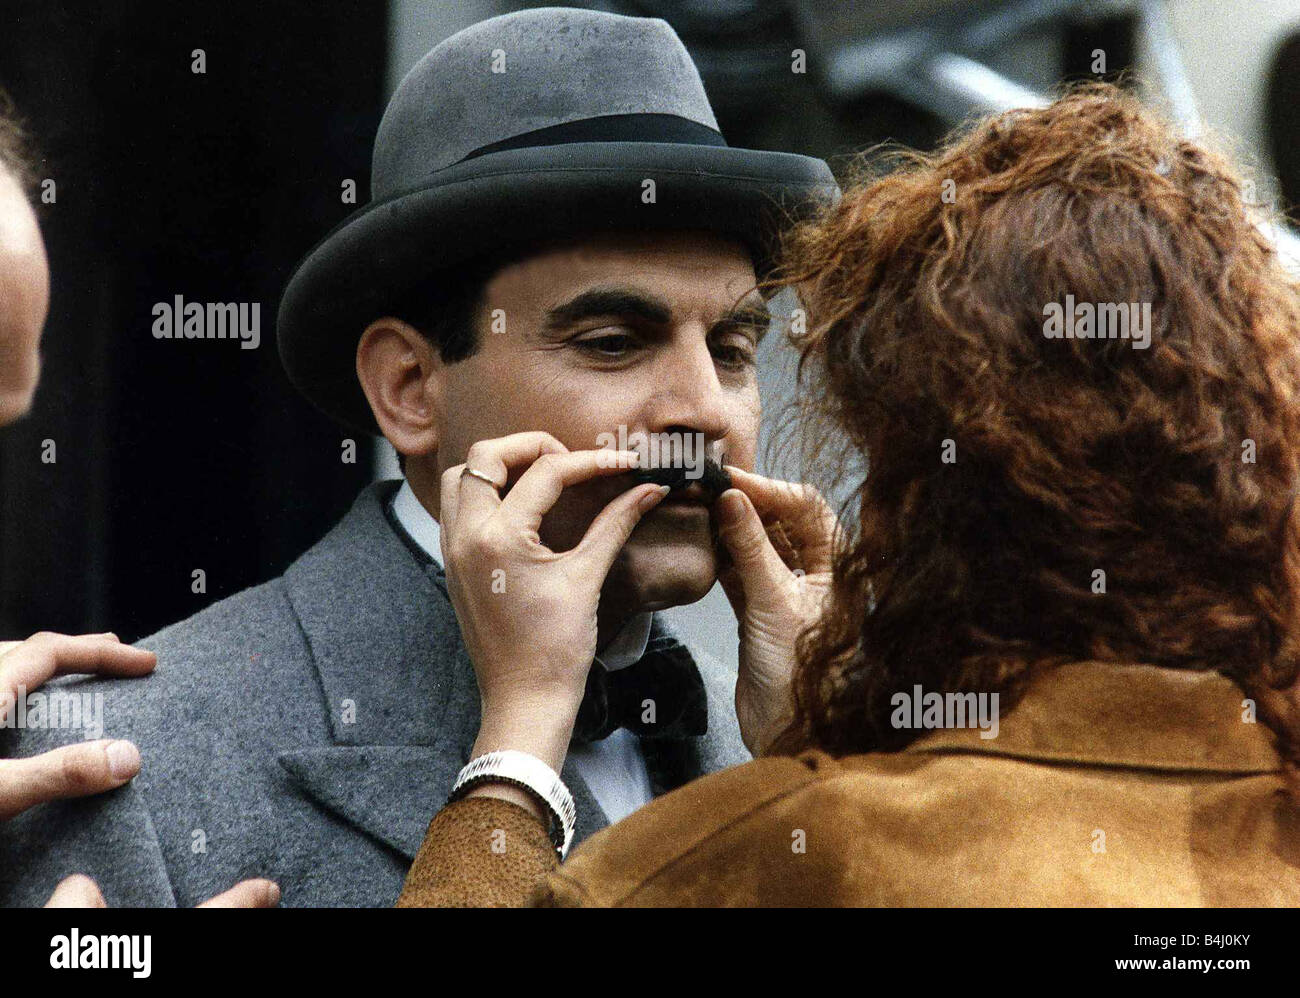 David Suchet the actor from Poirot in November 1989 - Stock Image